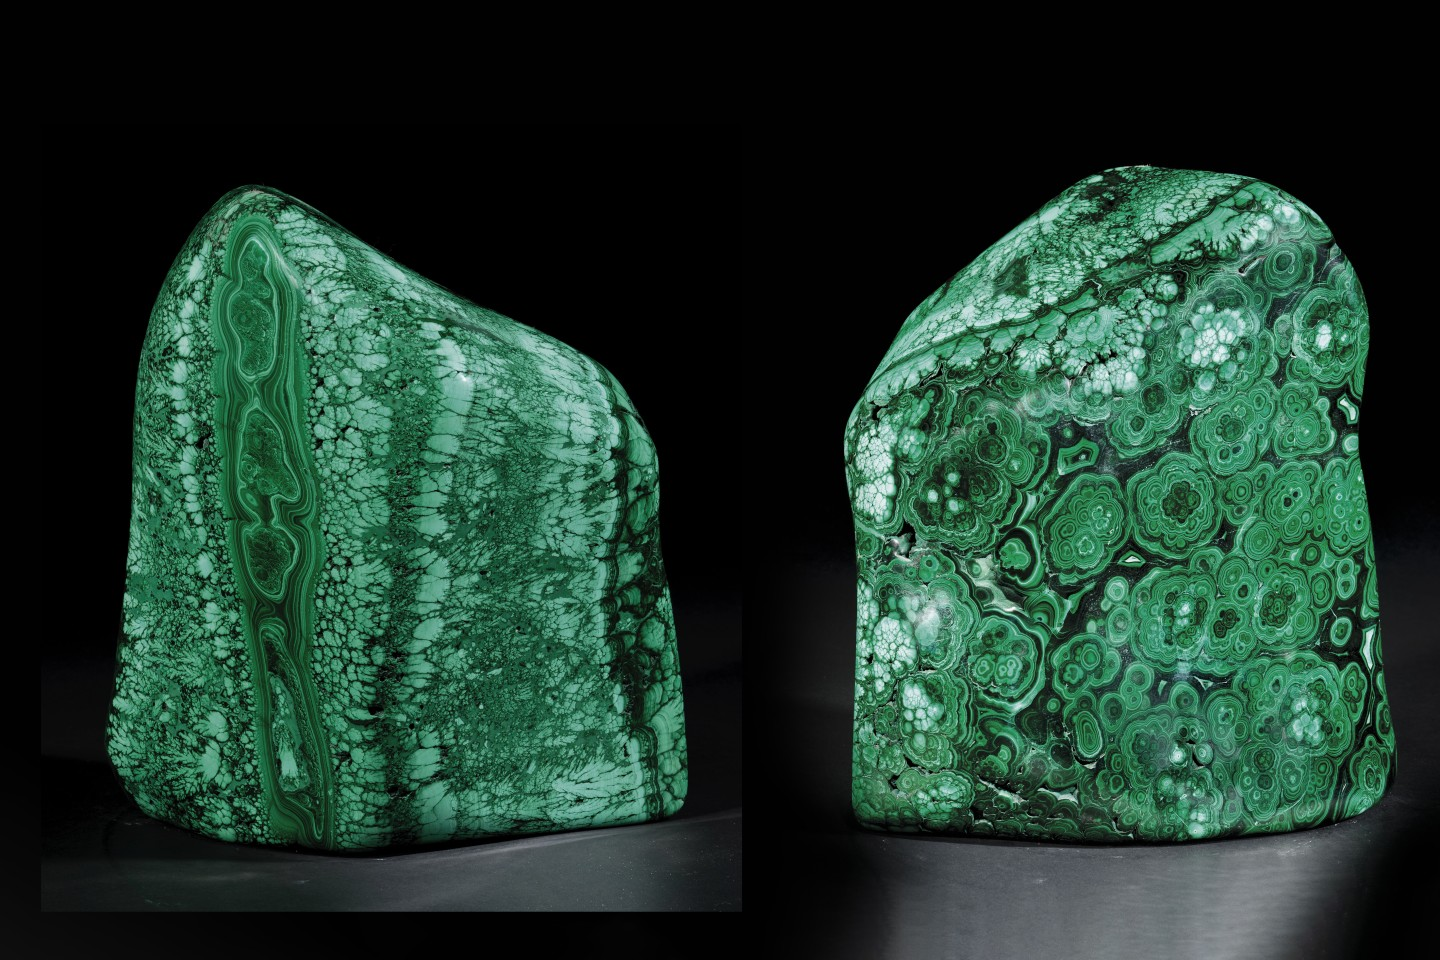 Originating from the Congo, this large free-standing specimen of malachite is polished on all sides and measures 113⁄4 x 11 x 8 inches (30 x 28 x 20 cm)